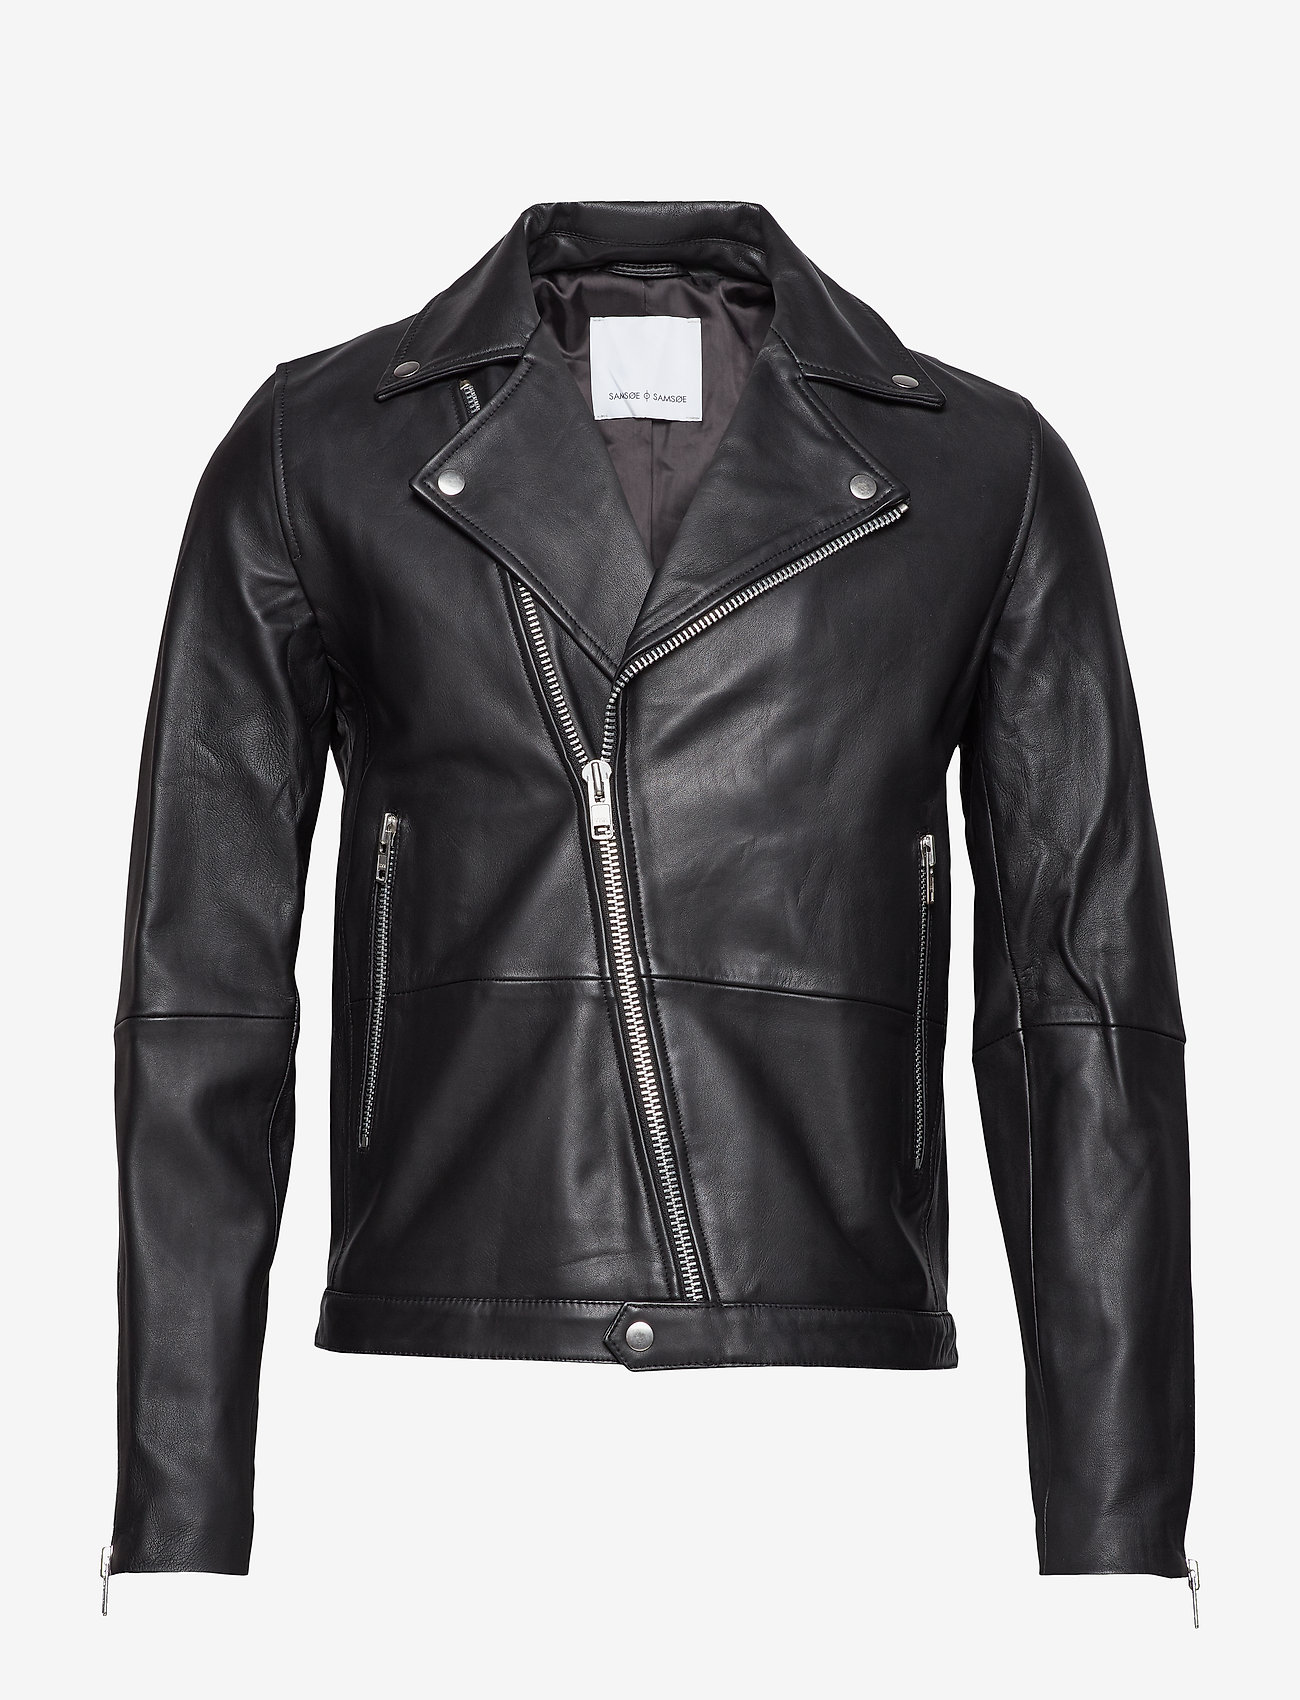 Spike Jacket 7248 (Black) (3999 kr) Samsøe Samsøe